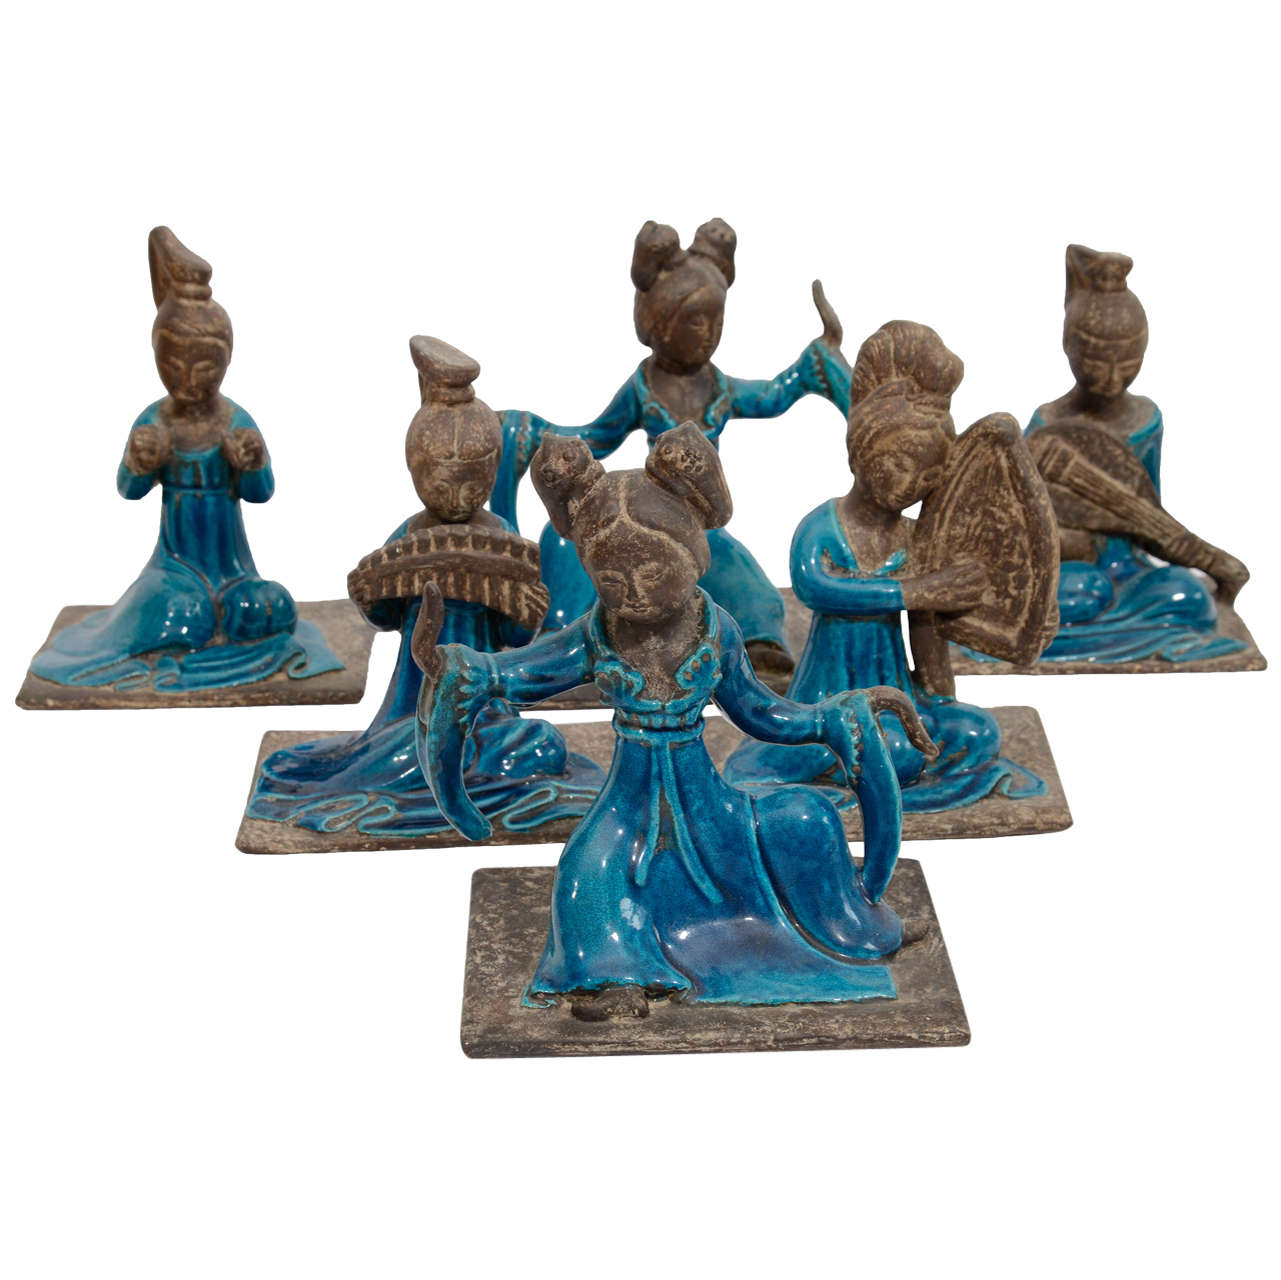 Chinese Court Musician Figurines by Zaccagnini